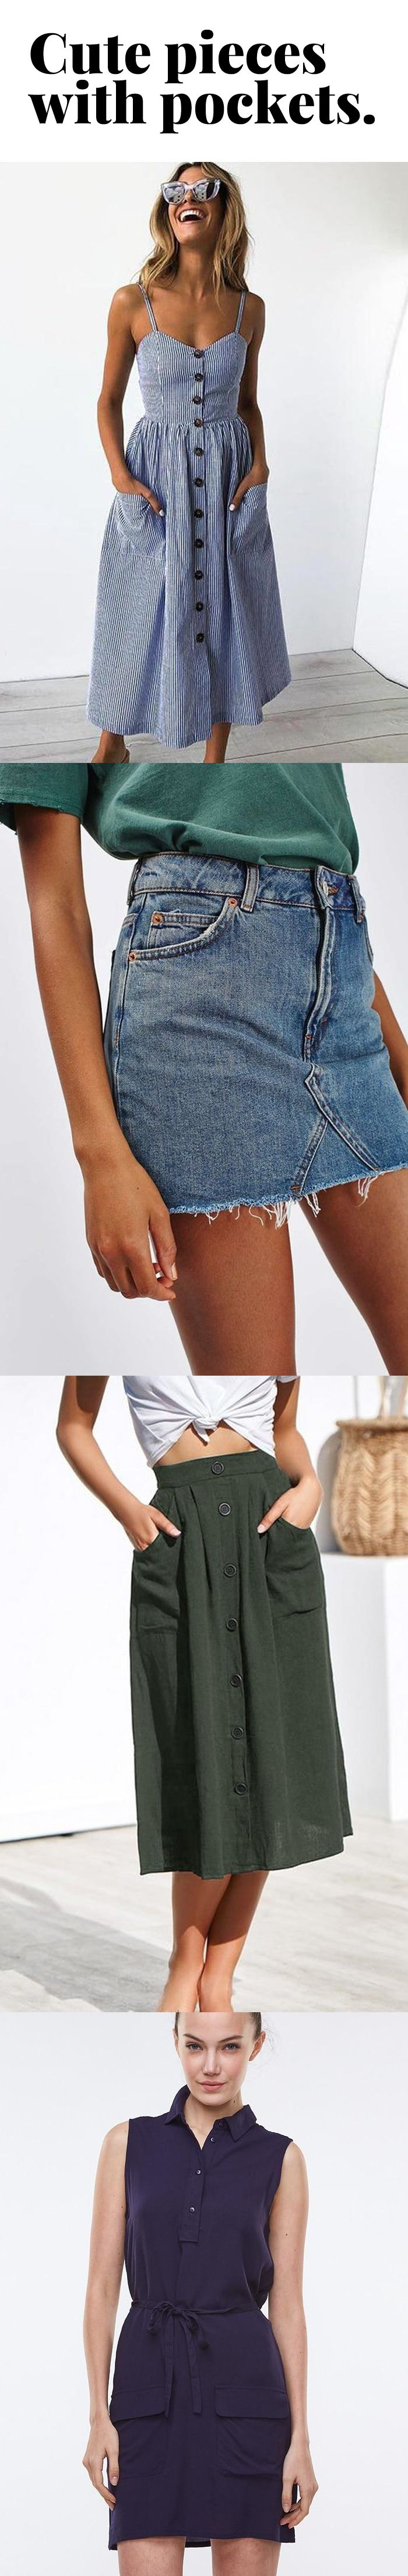 Super-cute pieces with pockets ★★★★★ (5/5) 2